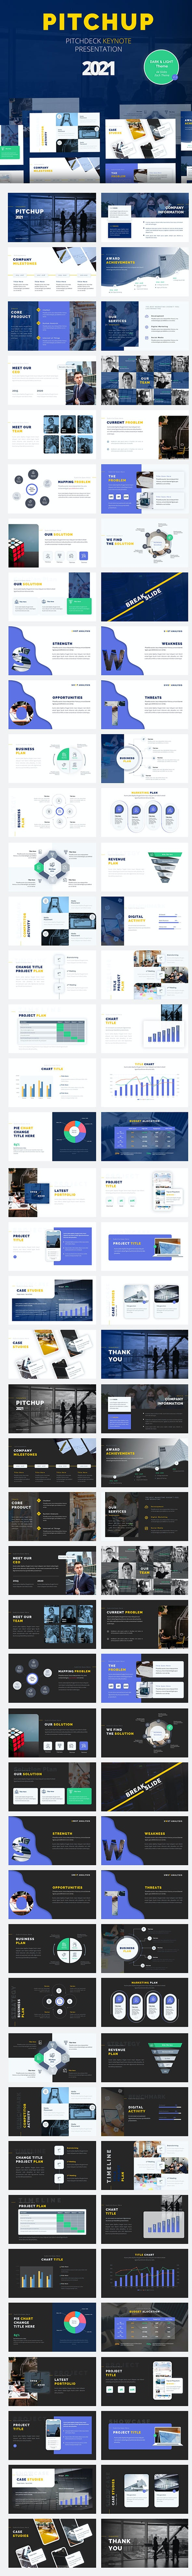 Pitchup – Pitch Deck Keynote Template - Pitch Deck PowerPoint Templates